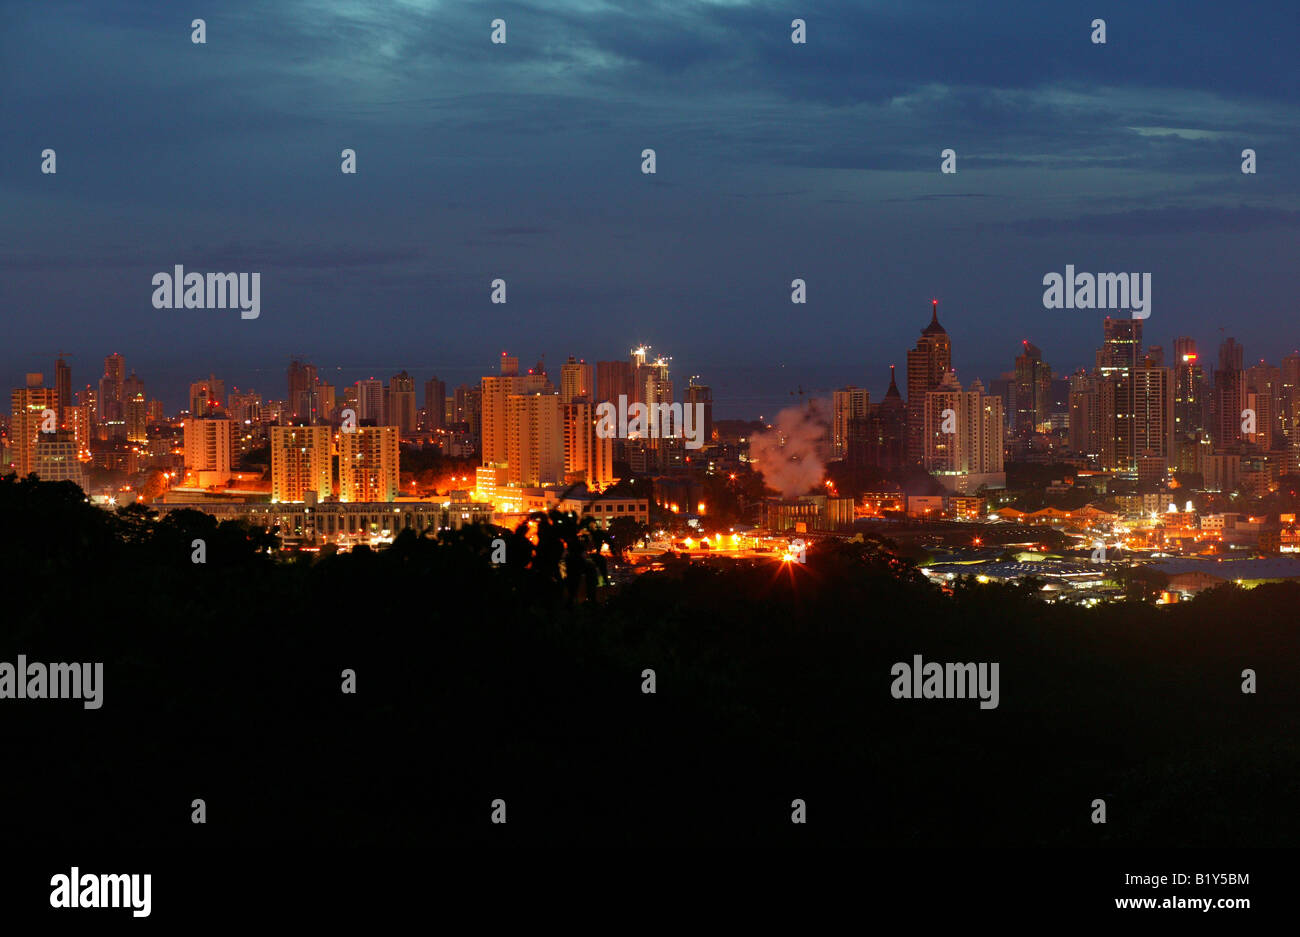 Panama city at night seen from the top of Metropolitan park, Panama province, Republic of Panama. November, 2007. - Stock Image